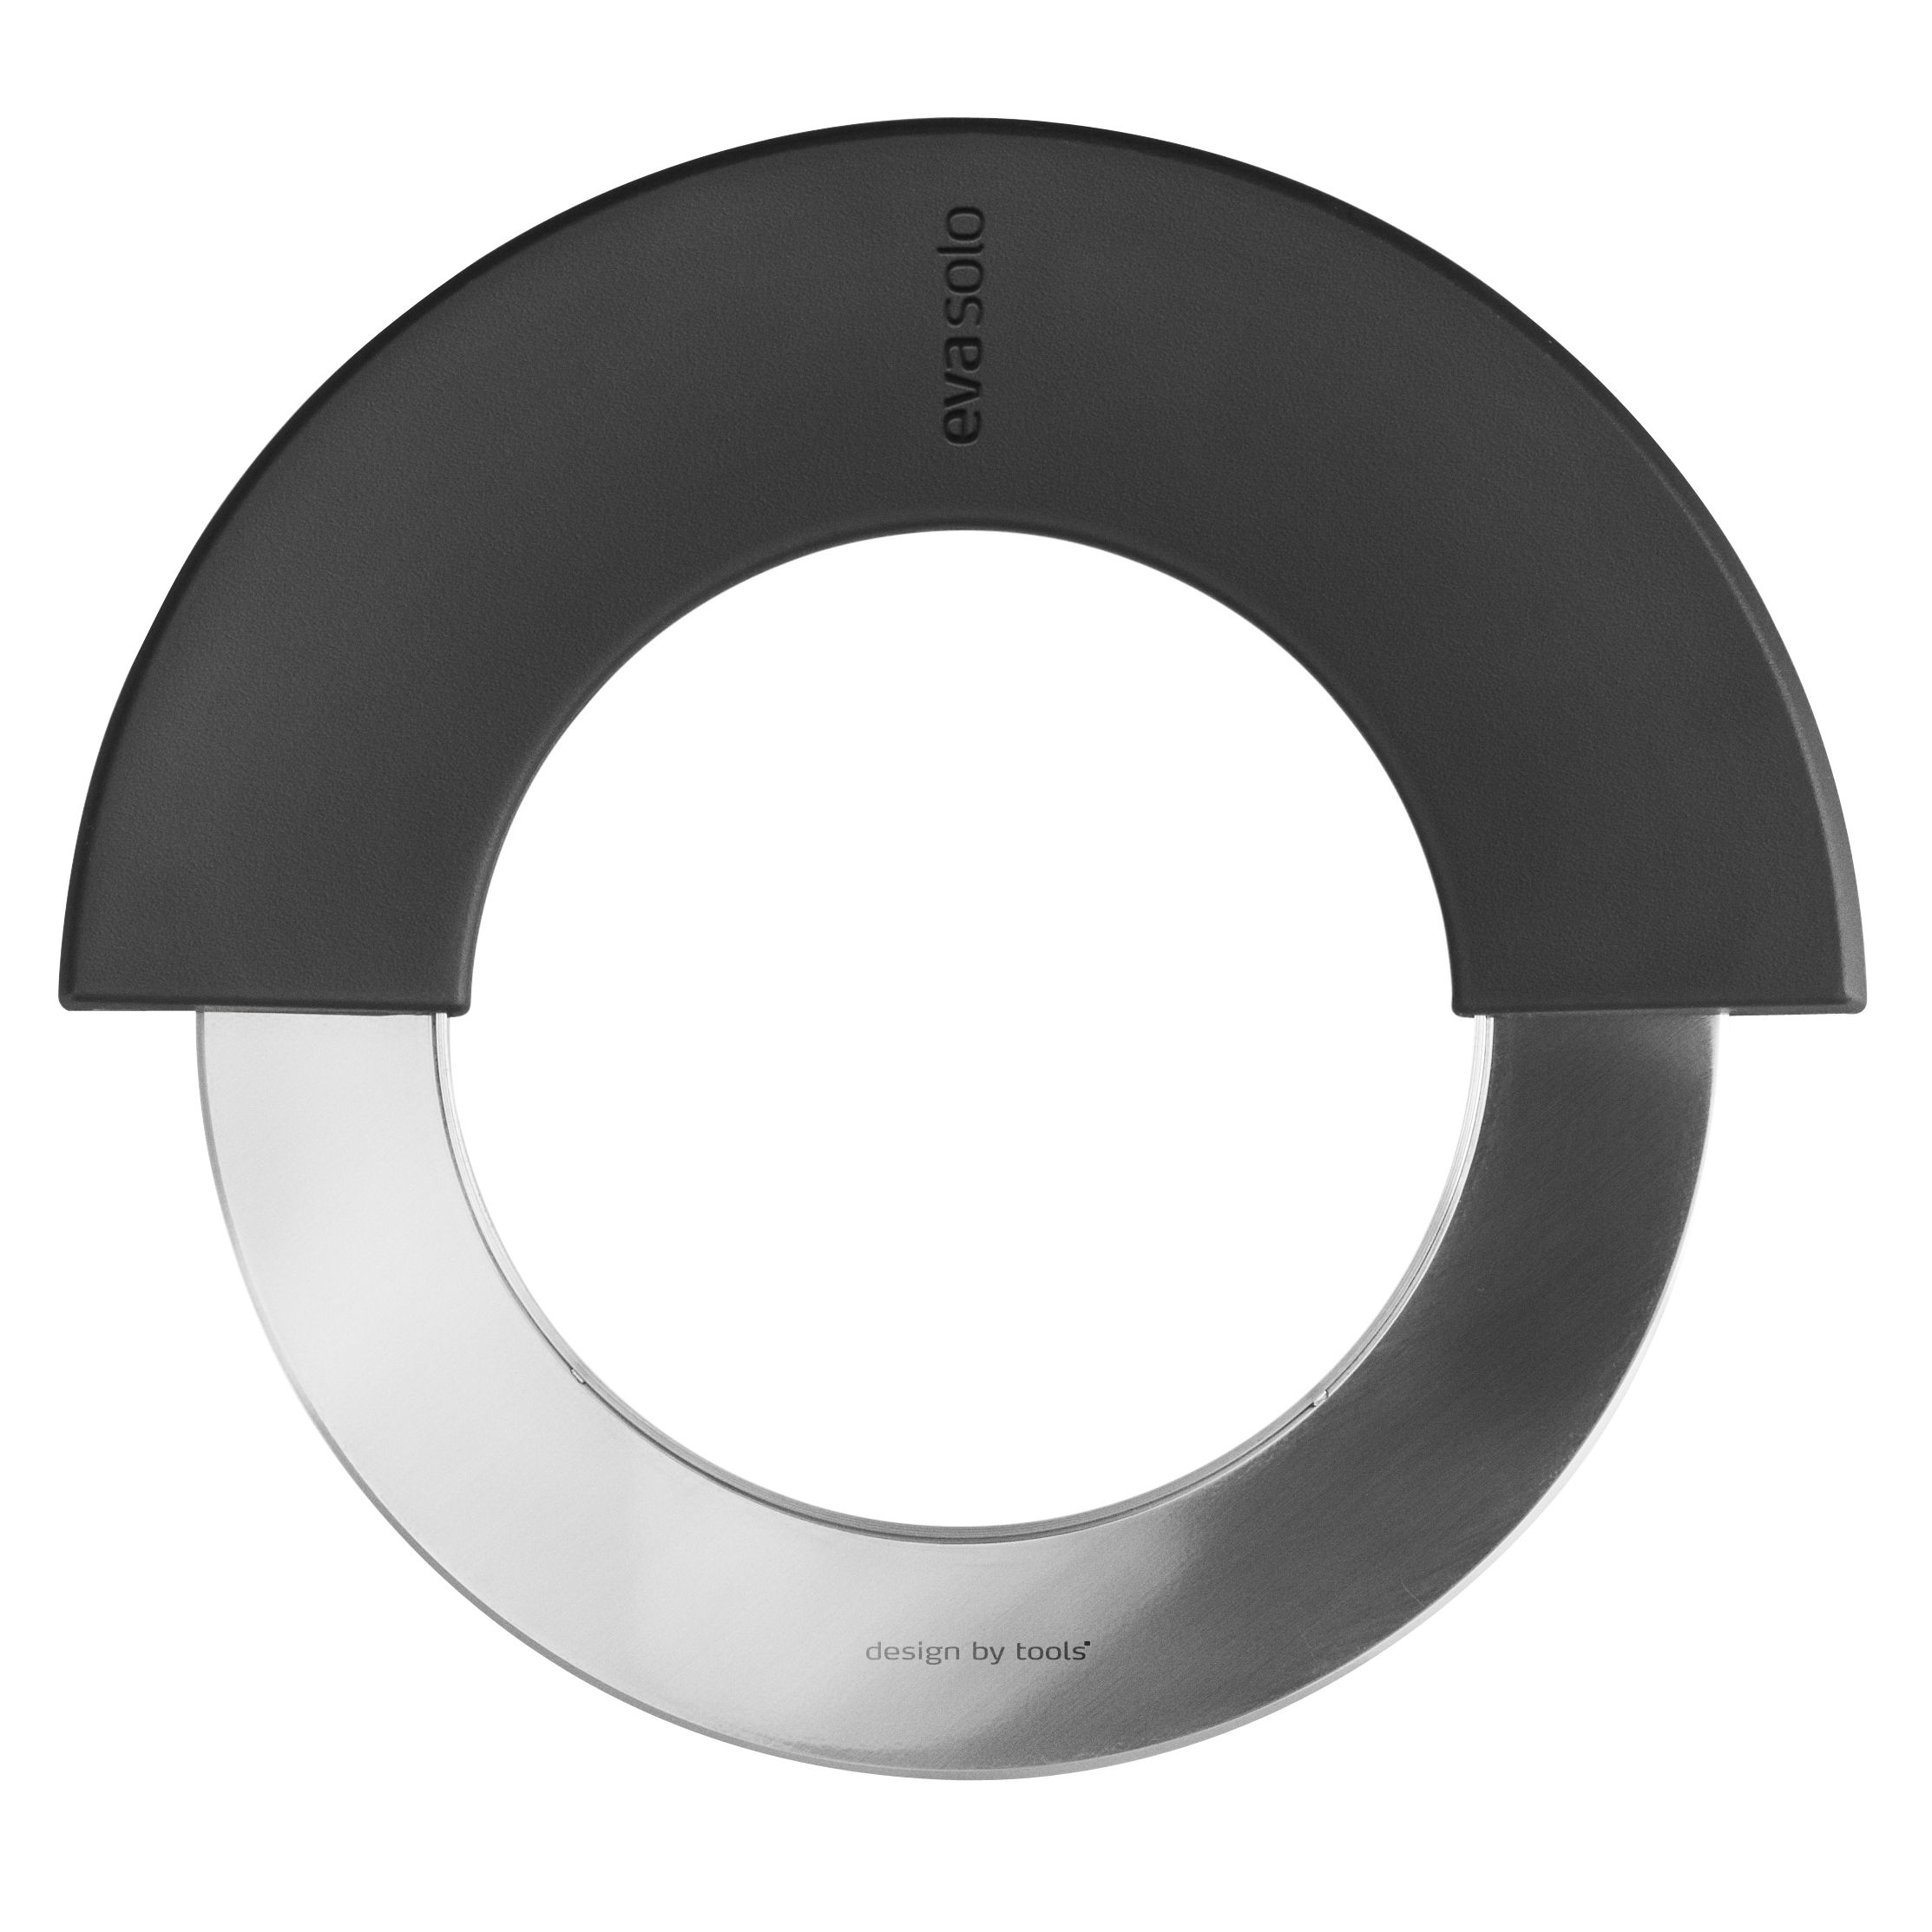 Kitchenware - Kitchen Equipment - Cut 'N Slice Pizza cutter by Eva Solo - Black - Plastic material, Stainless steel